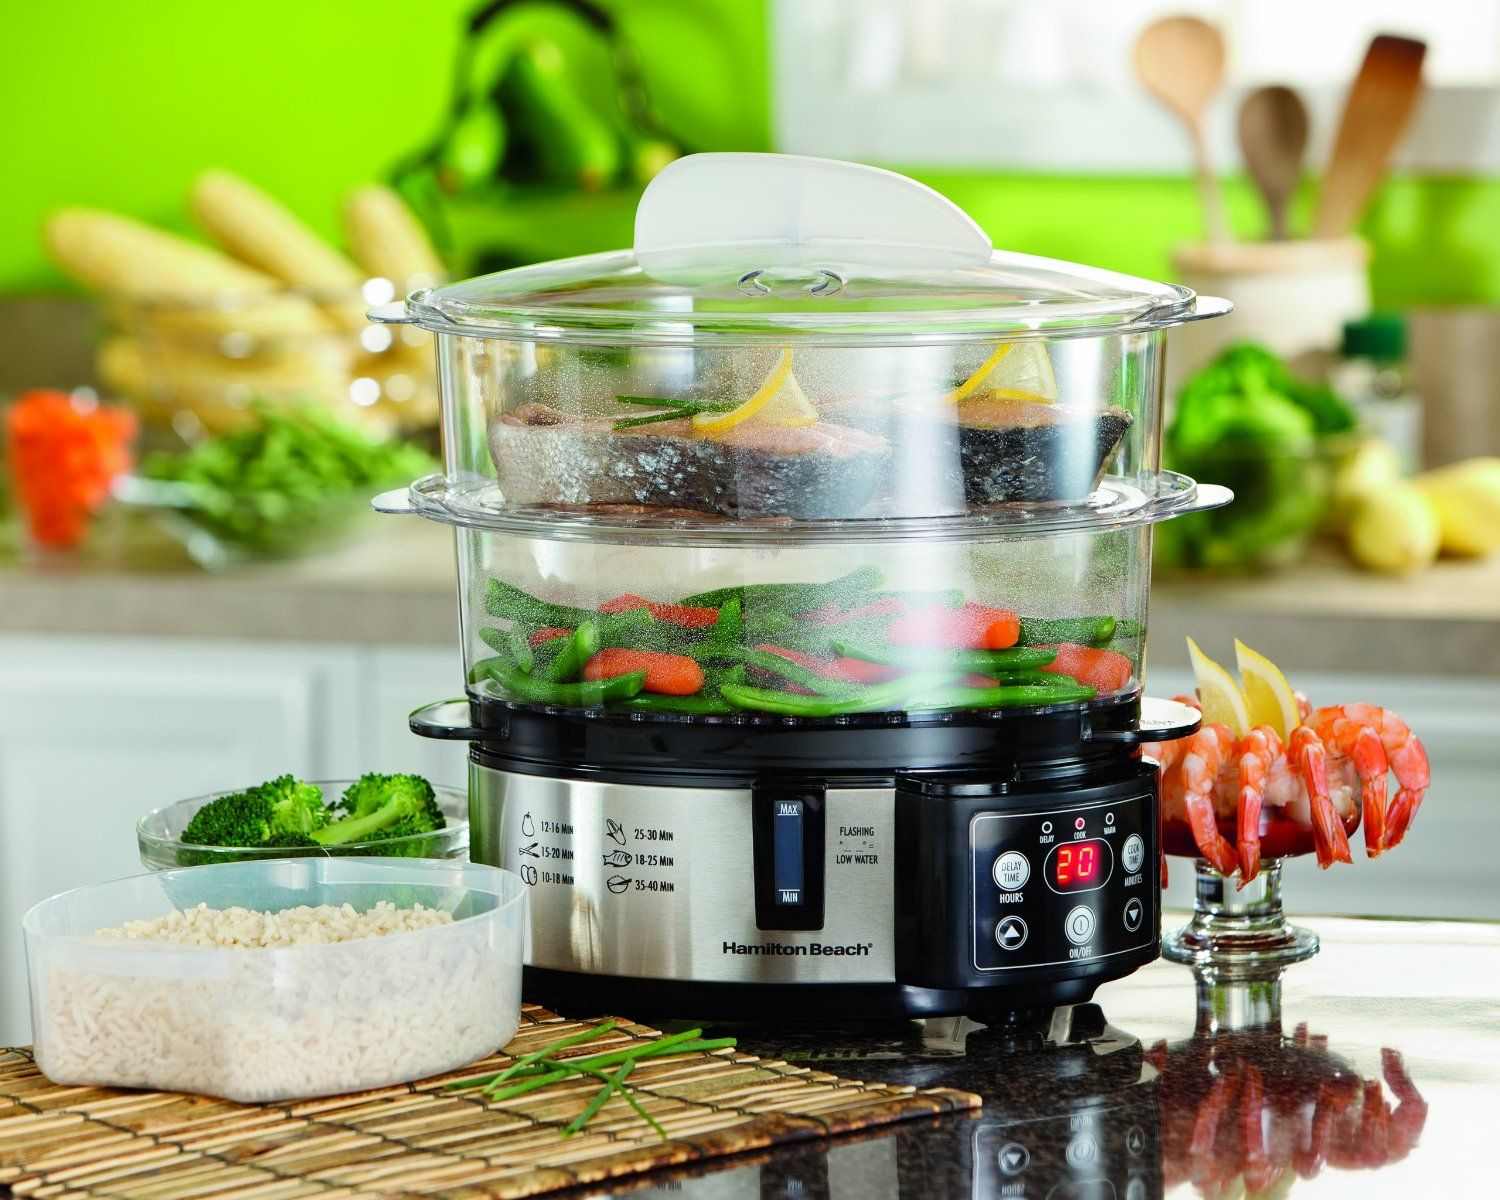 Hamilton Beach Electric Steamer Allows You To Steam Vegetables As A Side  Dish In 1 Tier